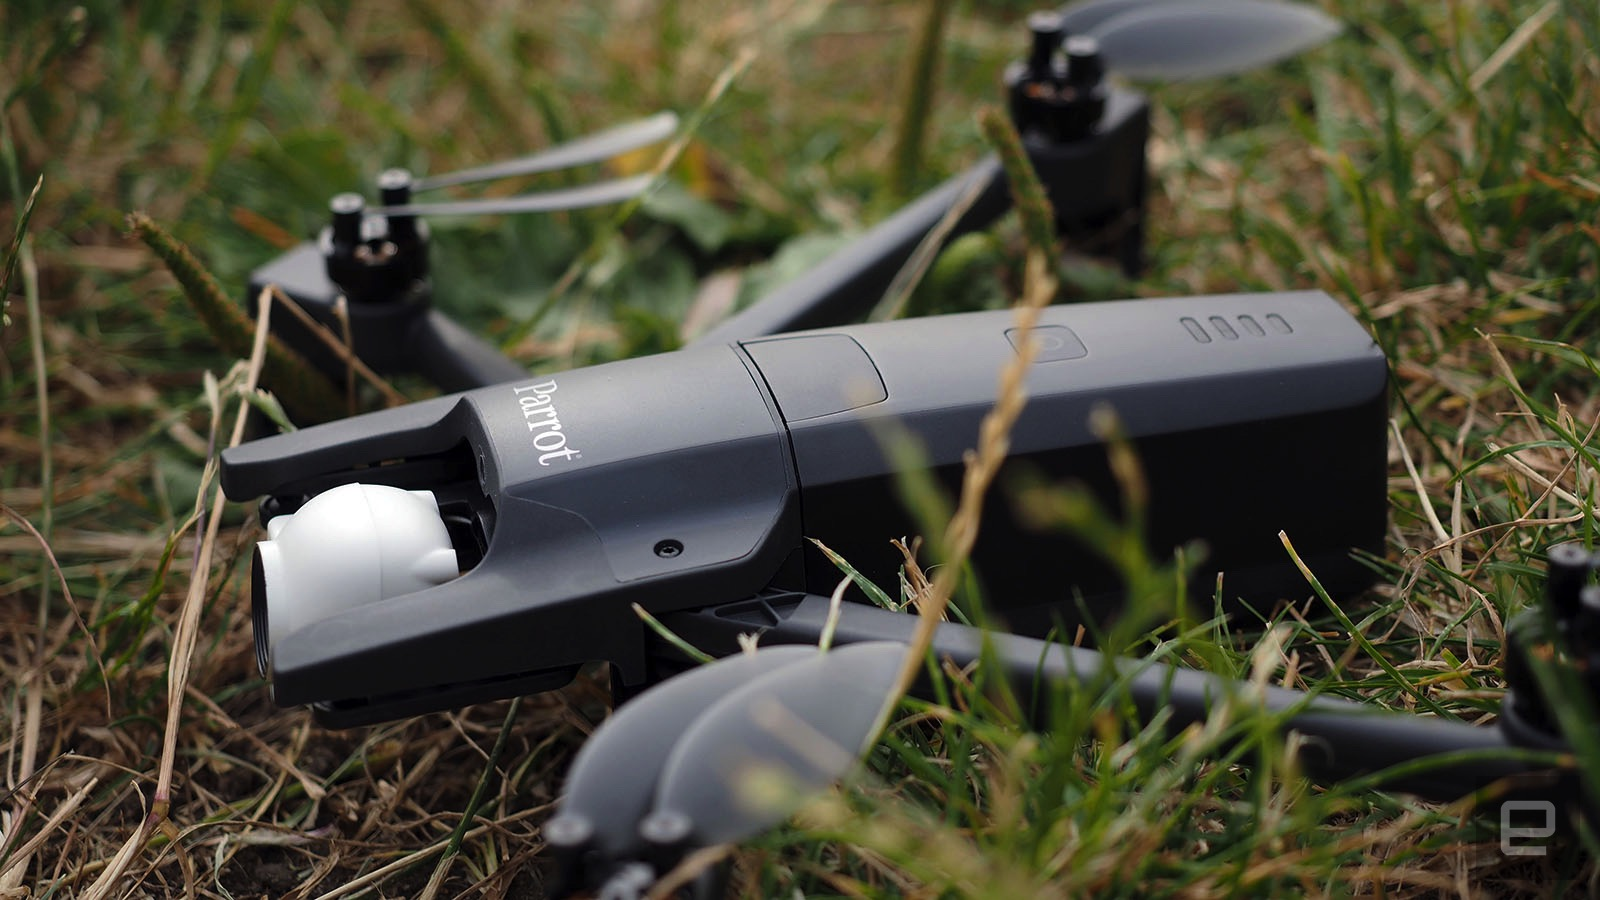 Parrot's Anafi 4K drone is much more than a flying toy